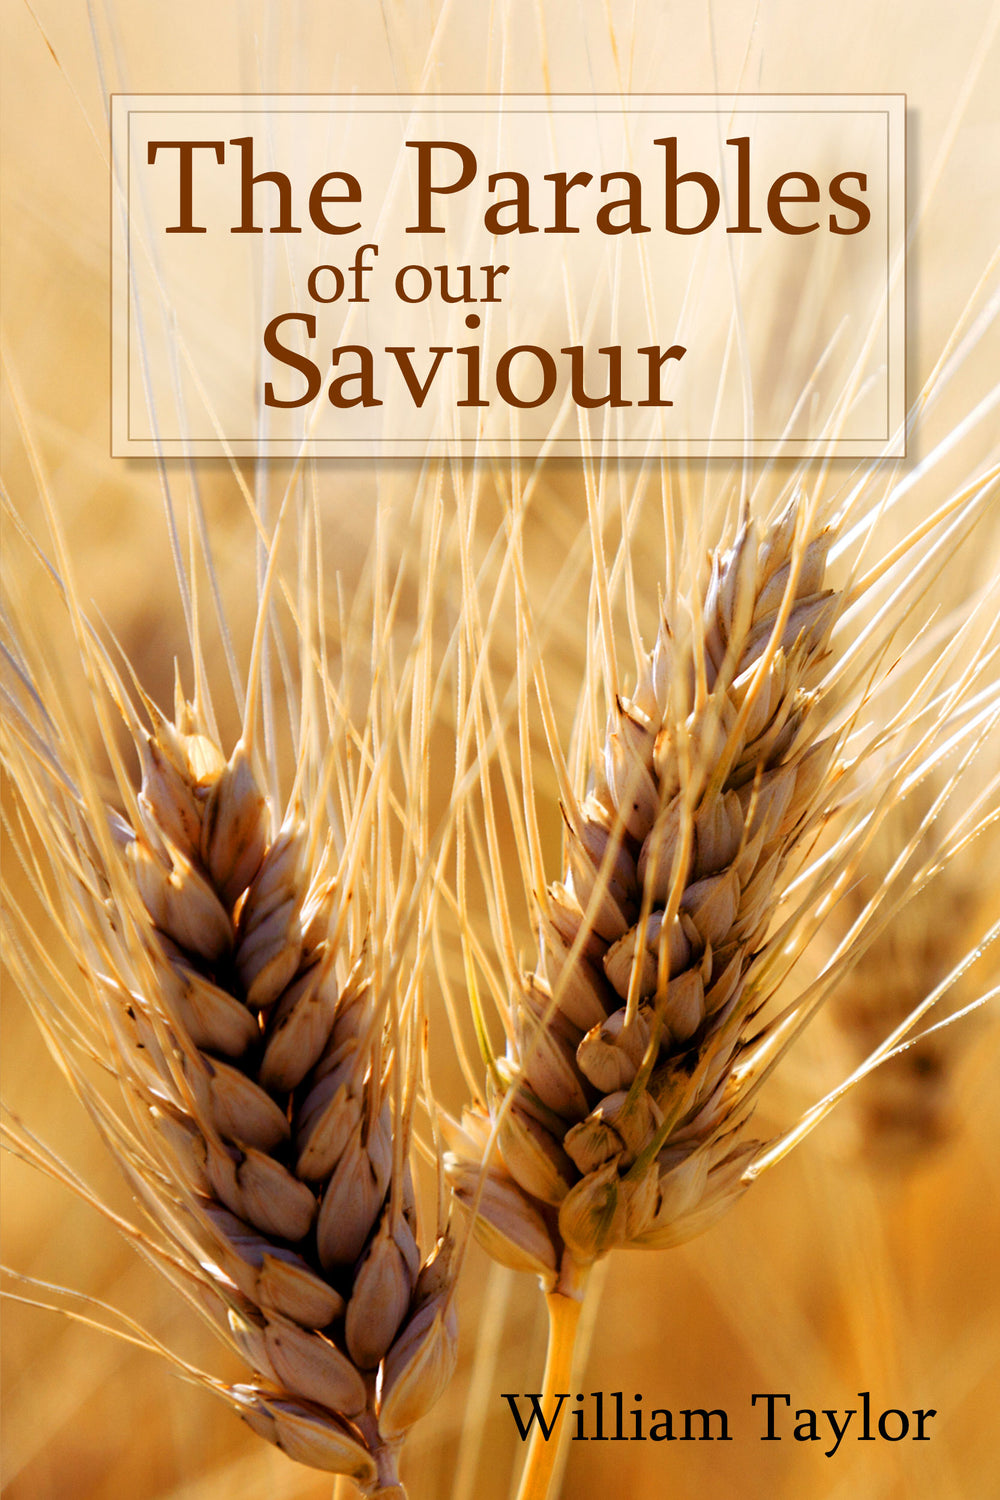 The Parables of our Saviour